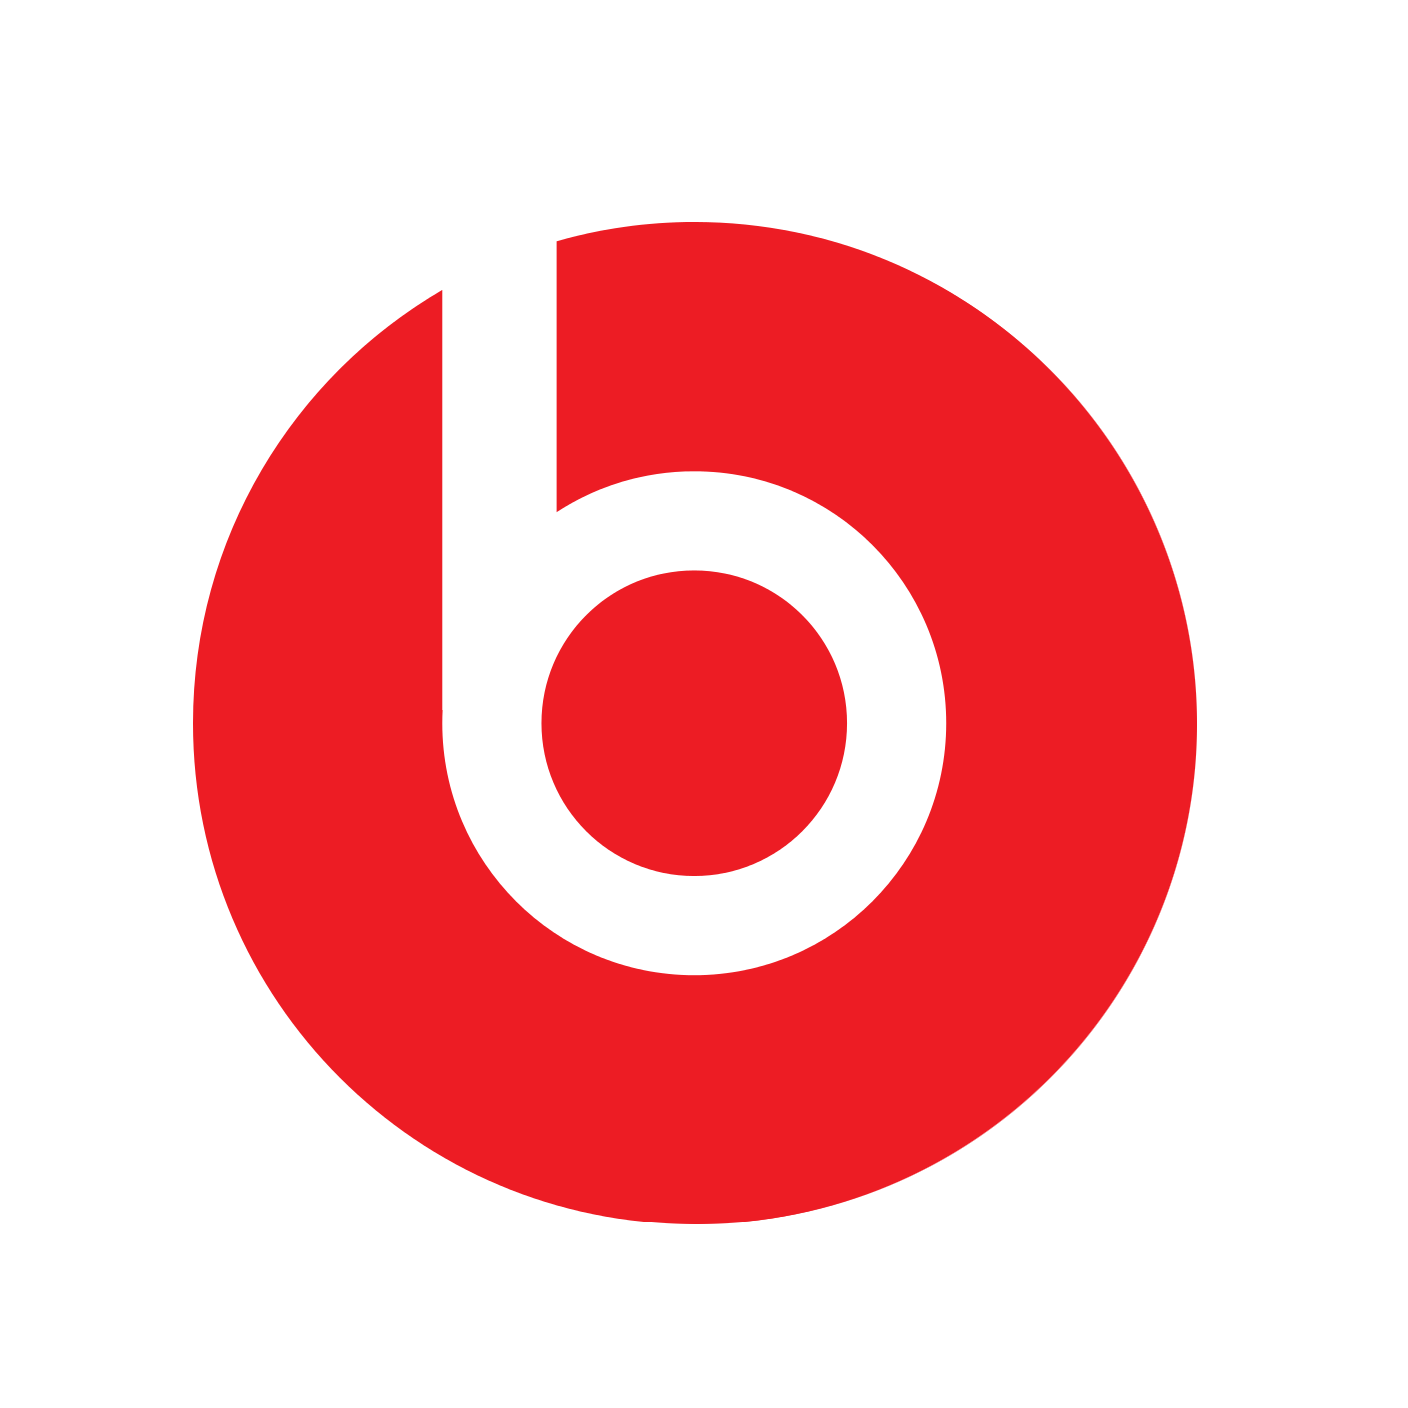 beats-by-dre-logo-png-wwwimgkidcom-the-image-kid-has-it-82896.png